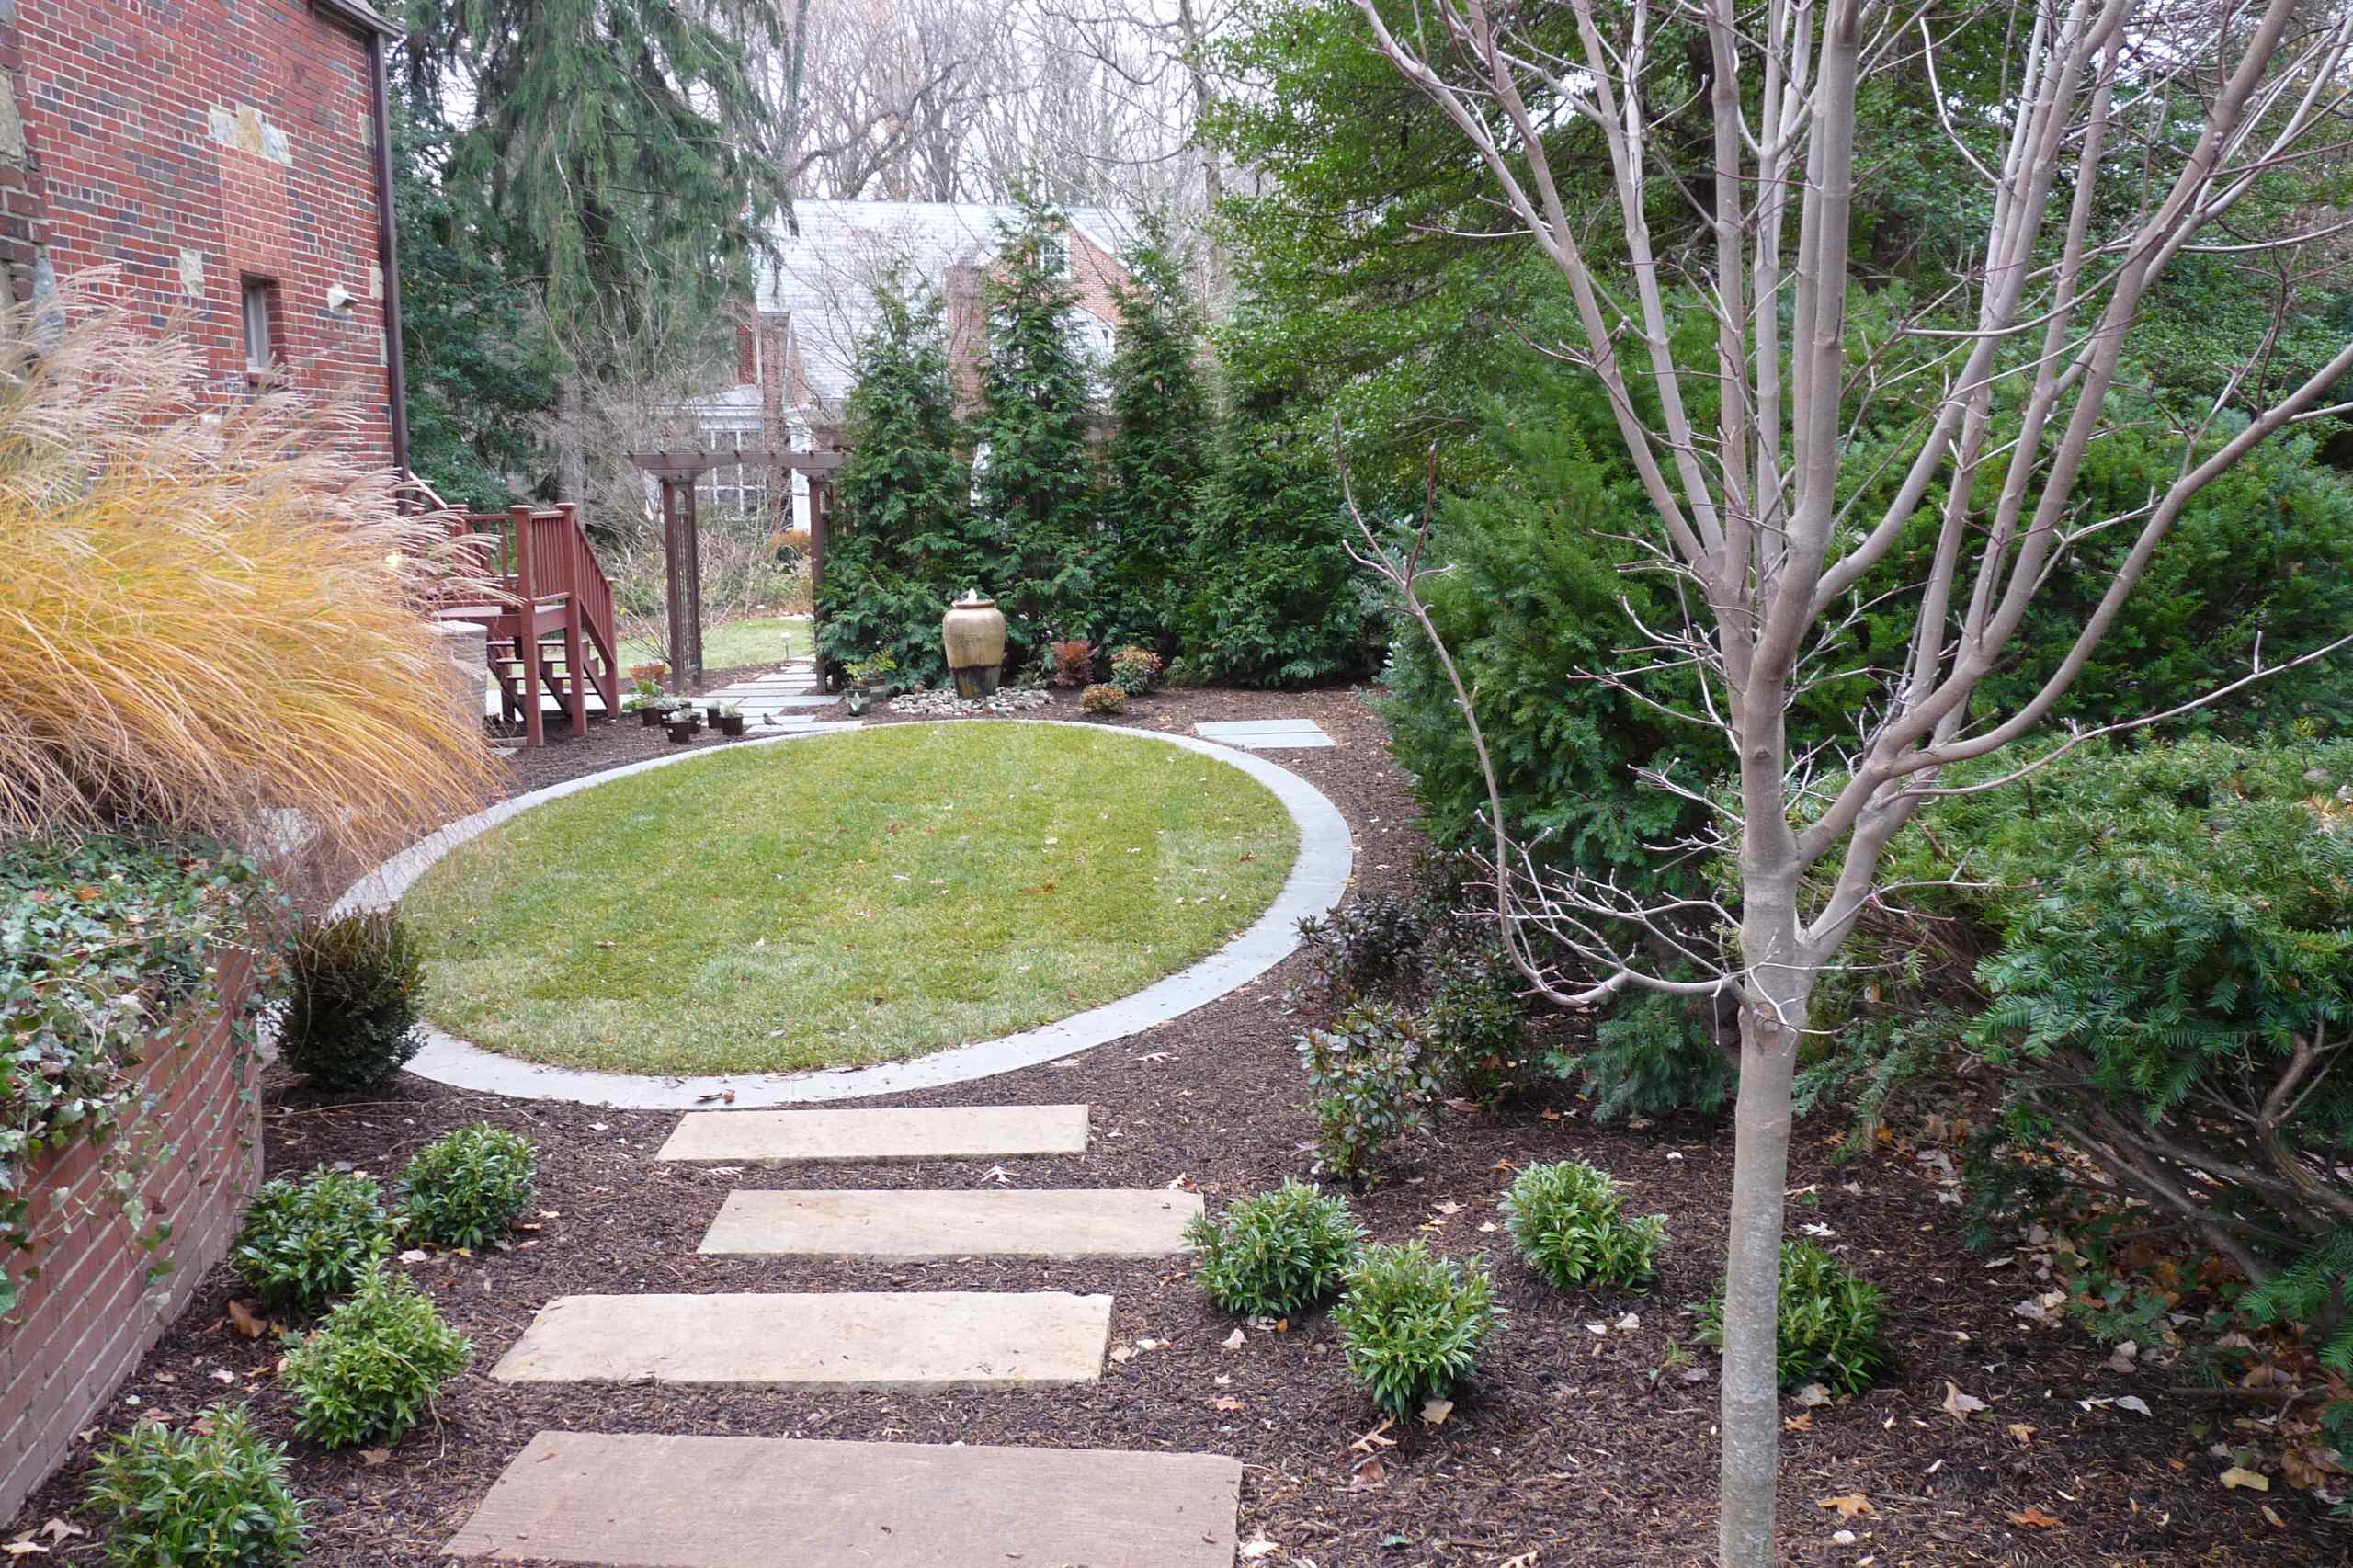 Elliptical Lawn with Water Feature